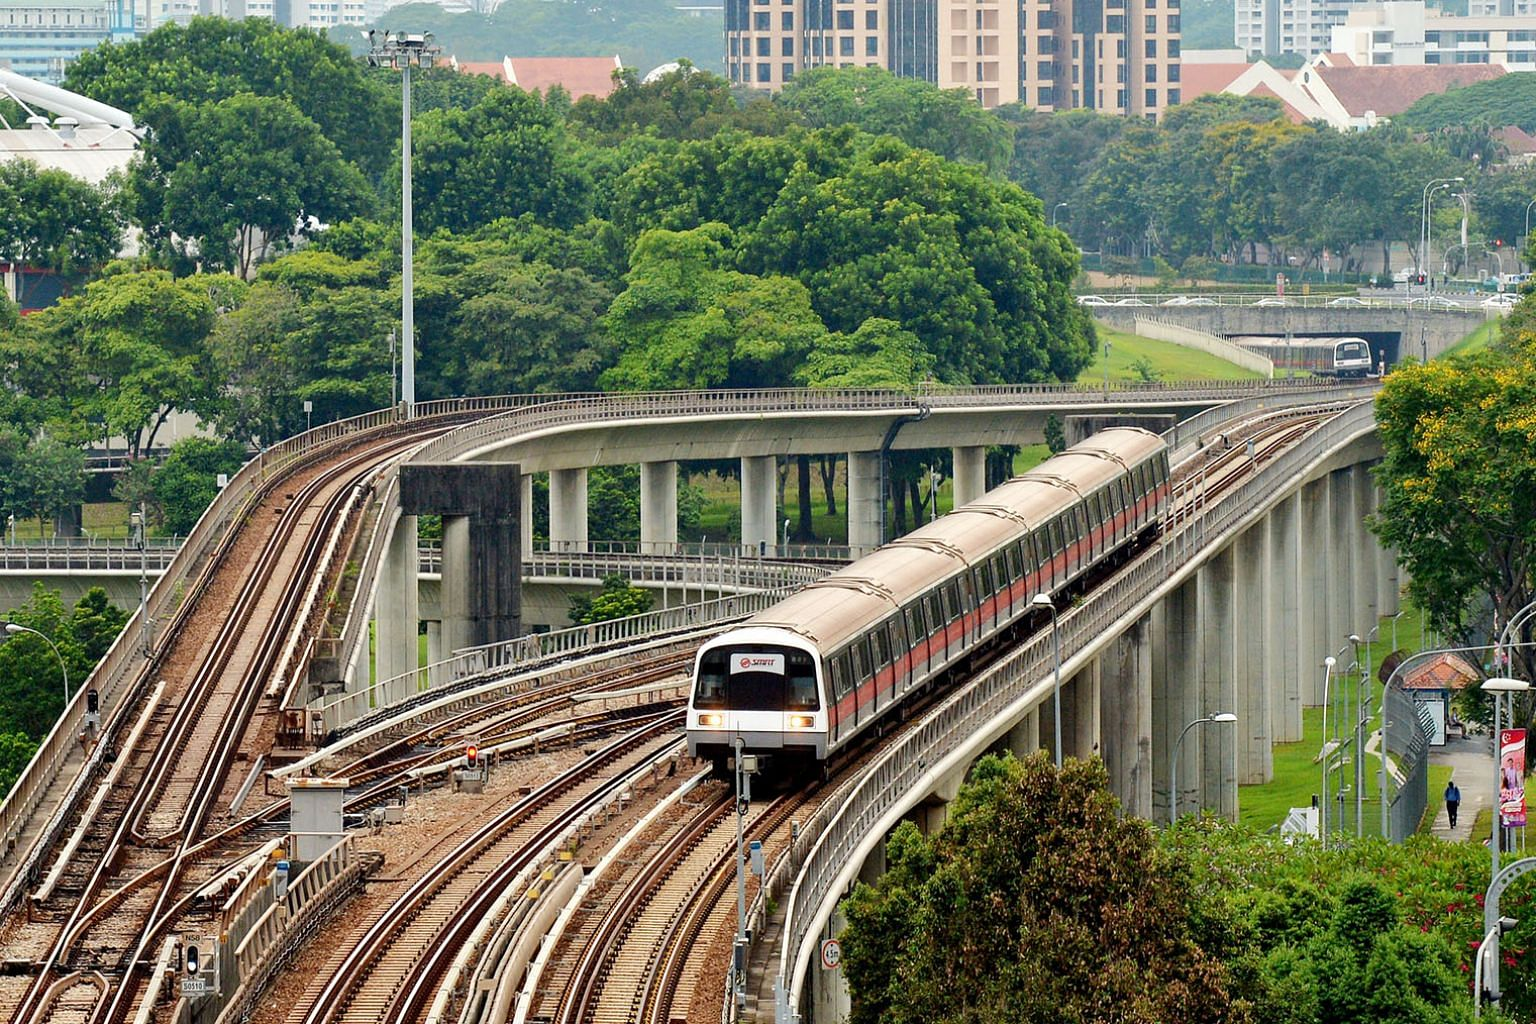 Many have questioned if Singapore is big enough a market for two rail operators. Certainly, there is some wastage in having two operators for such an engineering-intensive and capital-intensive industry, especially given the limited market size.